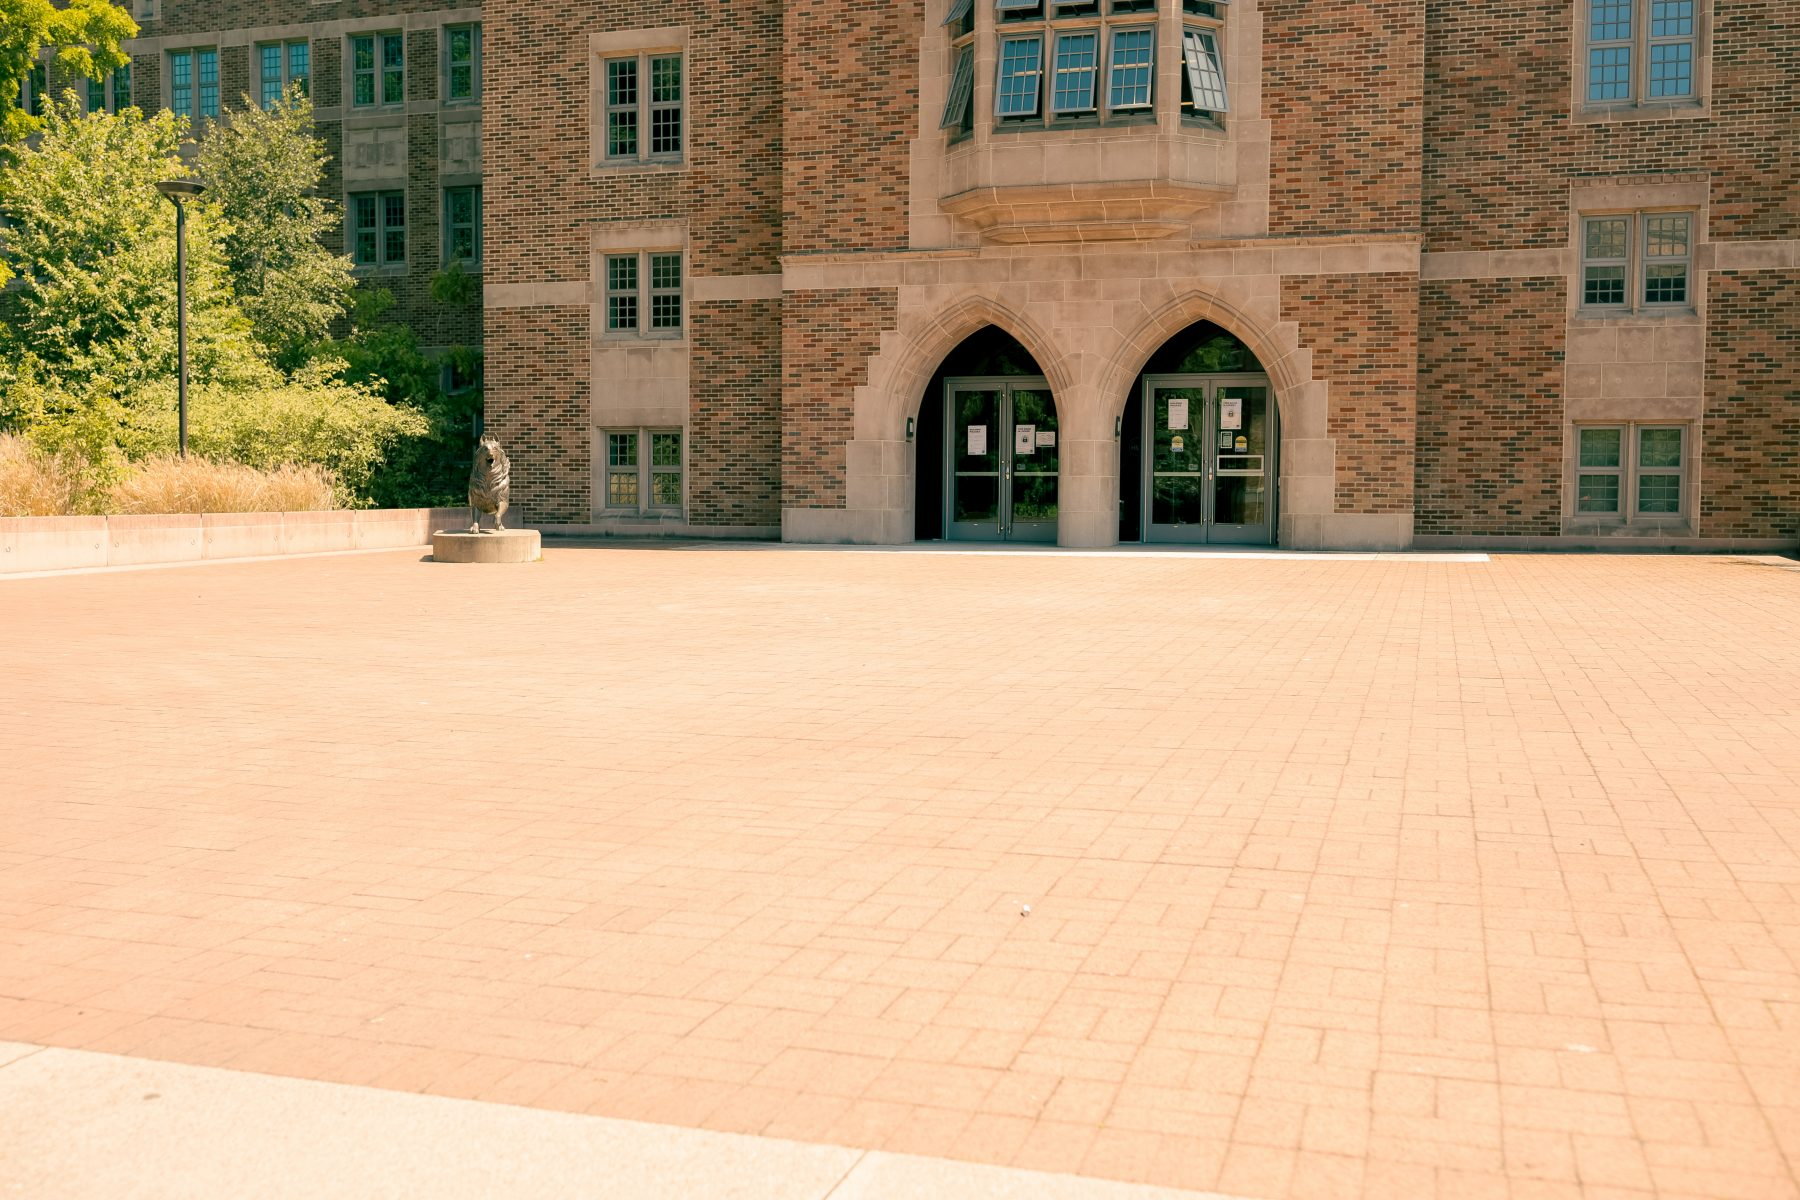 The HUB patio is a brick area located on the West side of the HUB